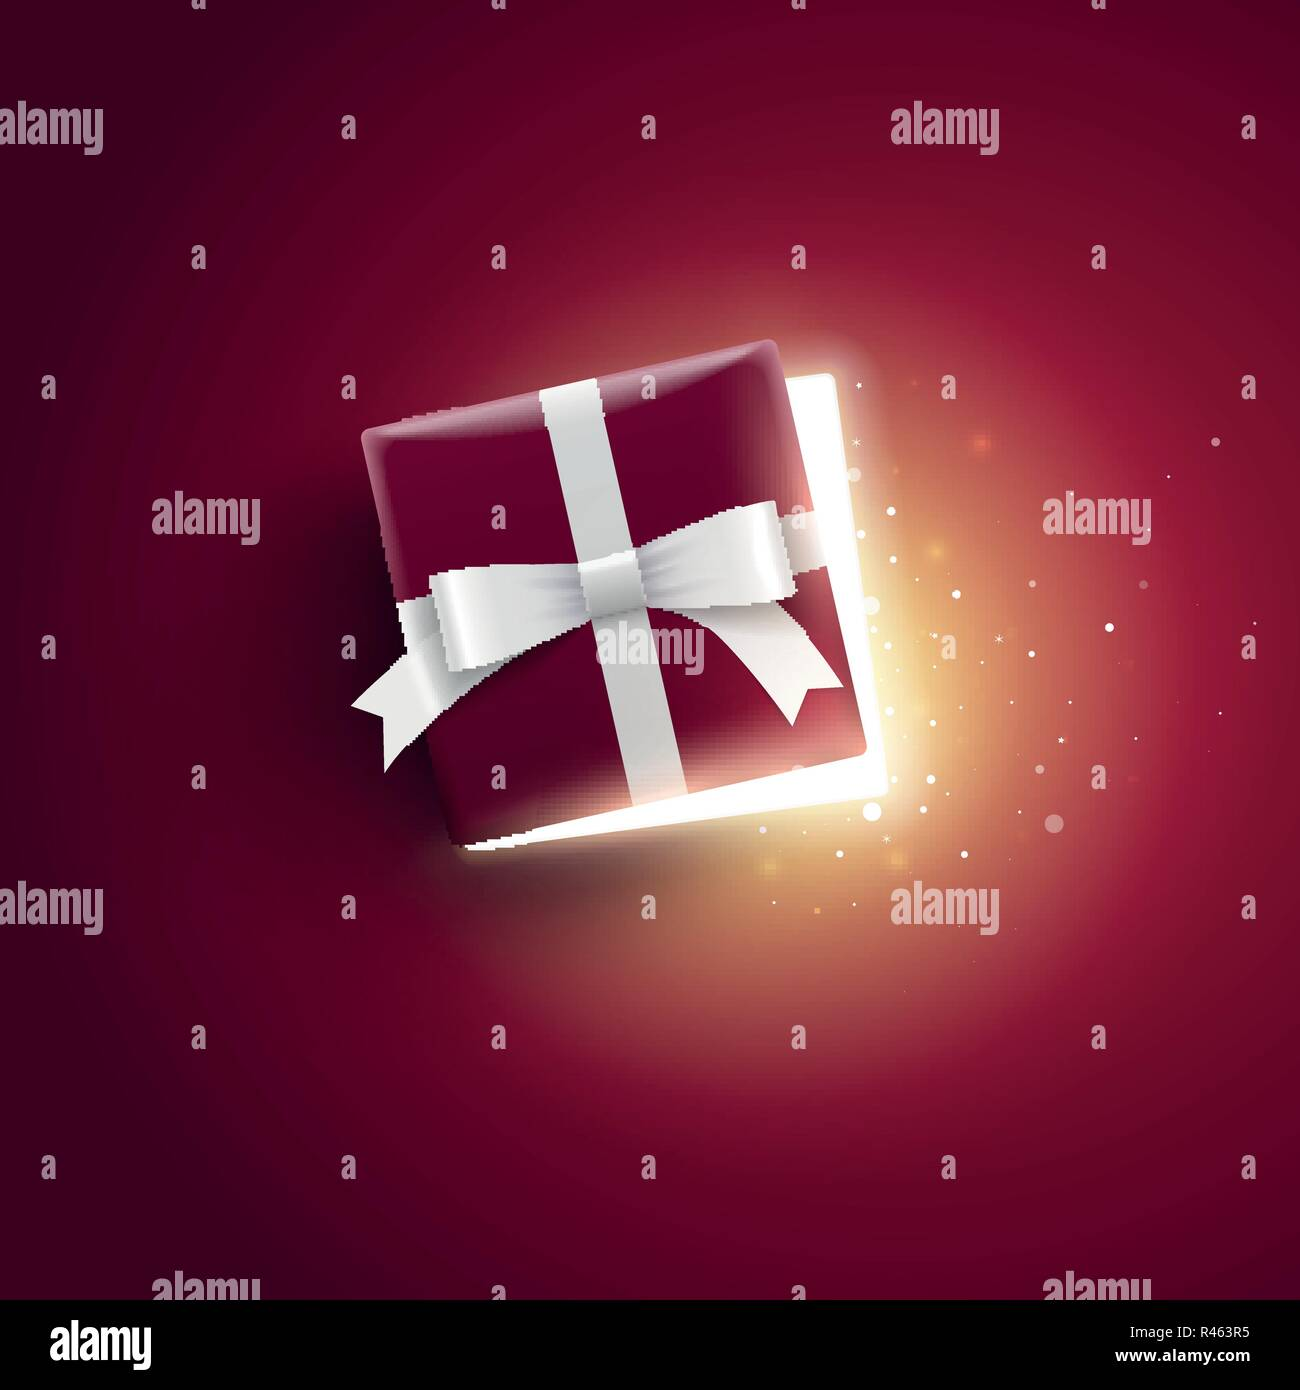 Half open gift box with magical lights. Top view. - Stock Vector